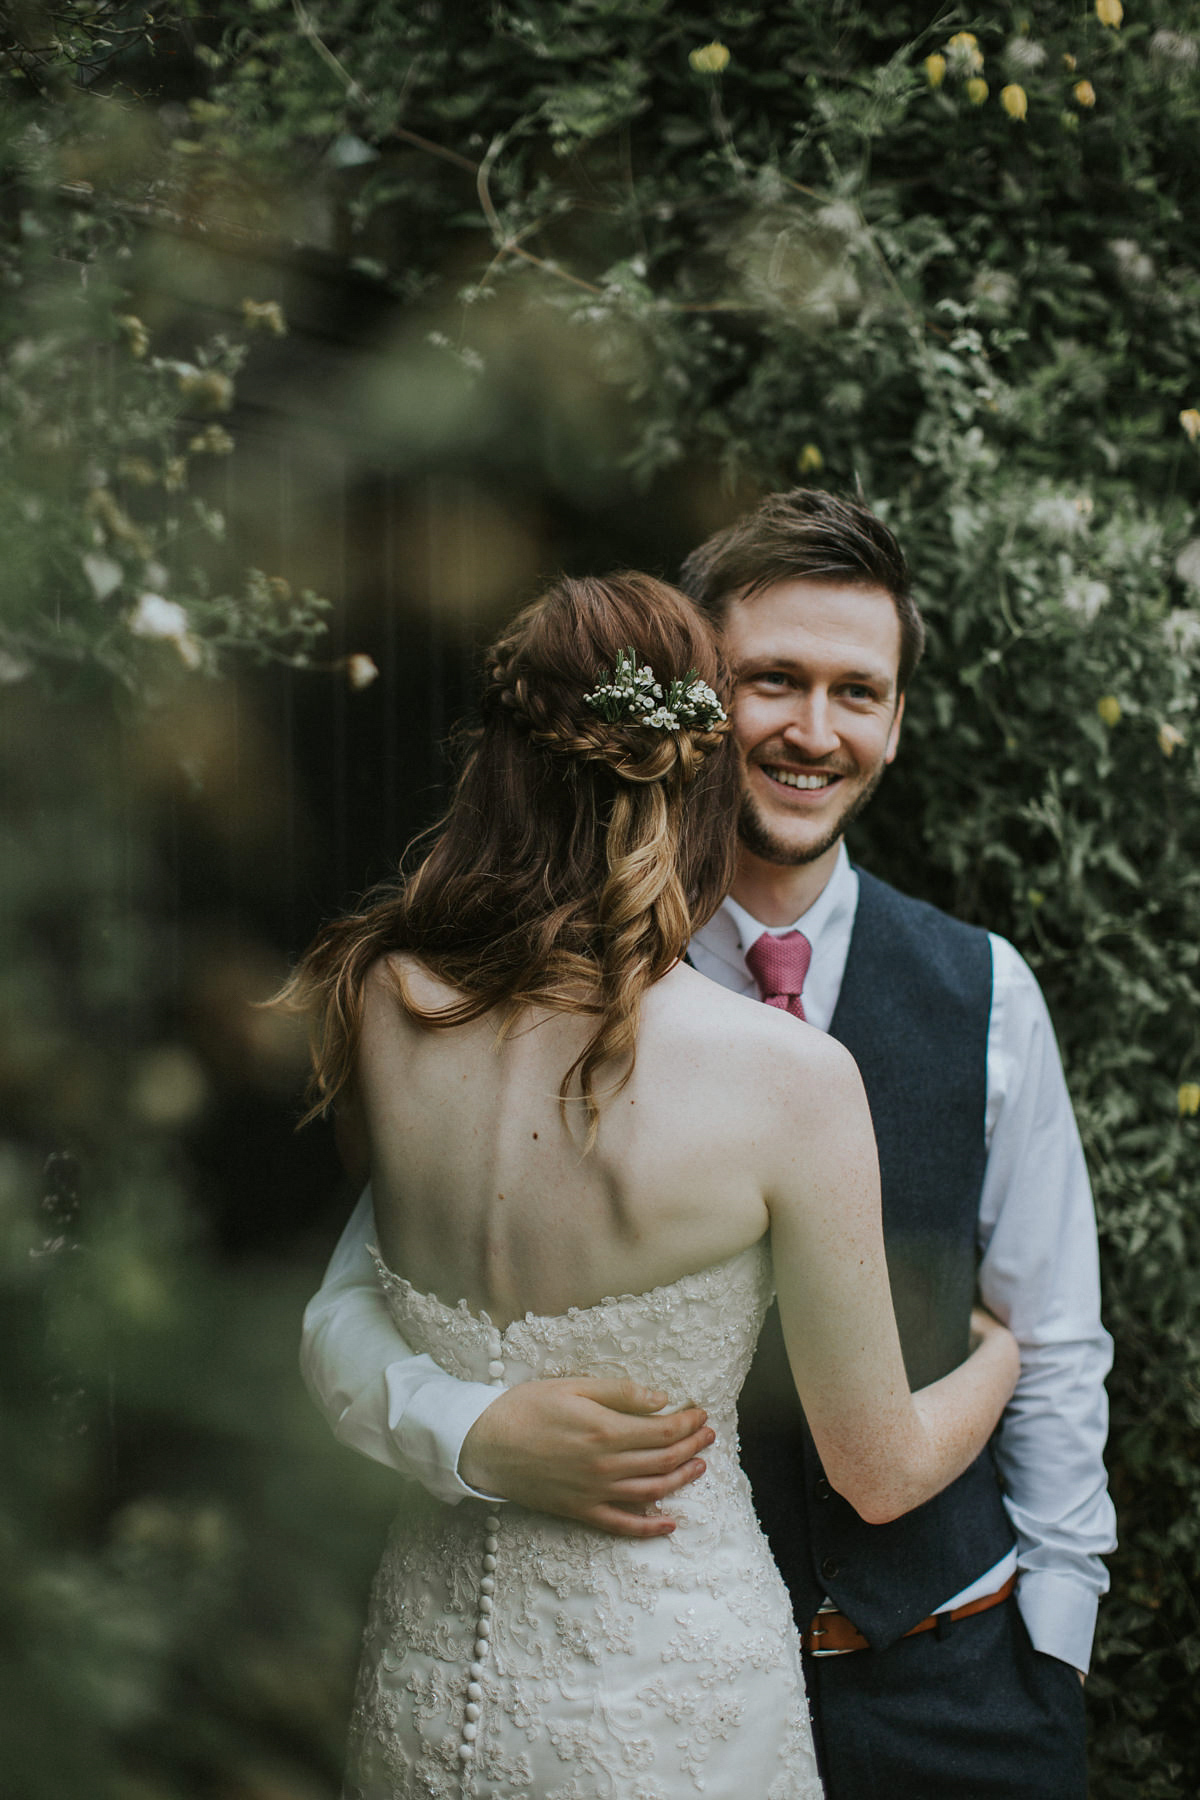 Maggie Sottero for a Fairylight Filled, Rustic and Natural Barn Wedding (Weddings )